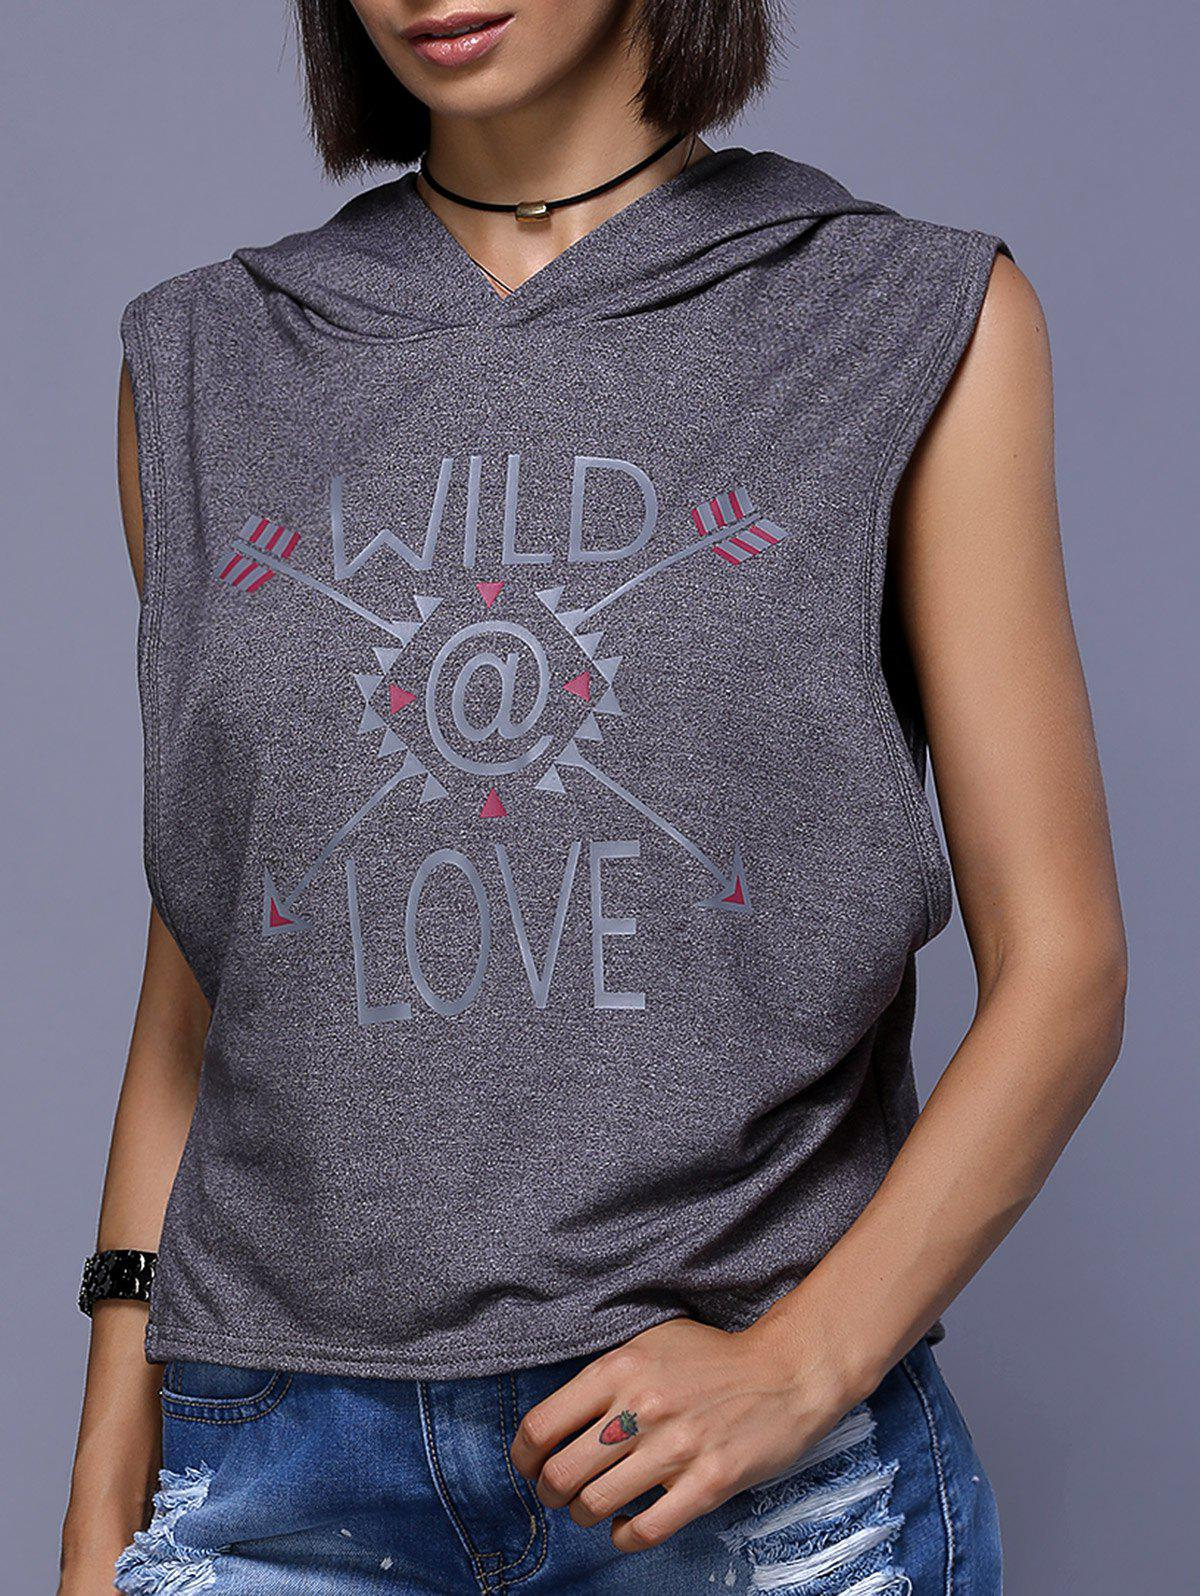 Stylish Hooded Print Sleeveless T-Shirt For Women - GRAY XL